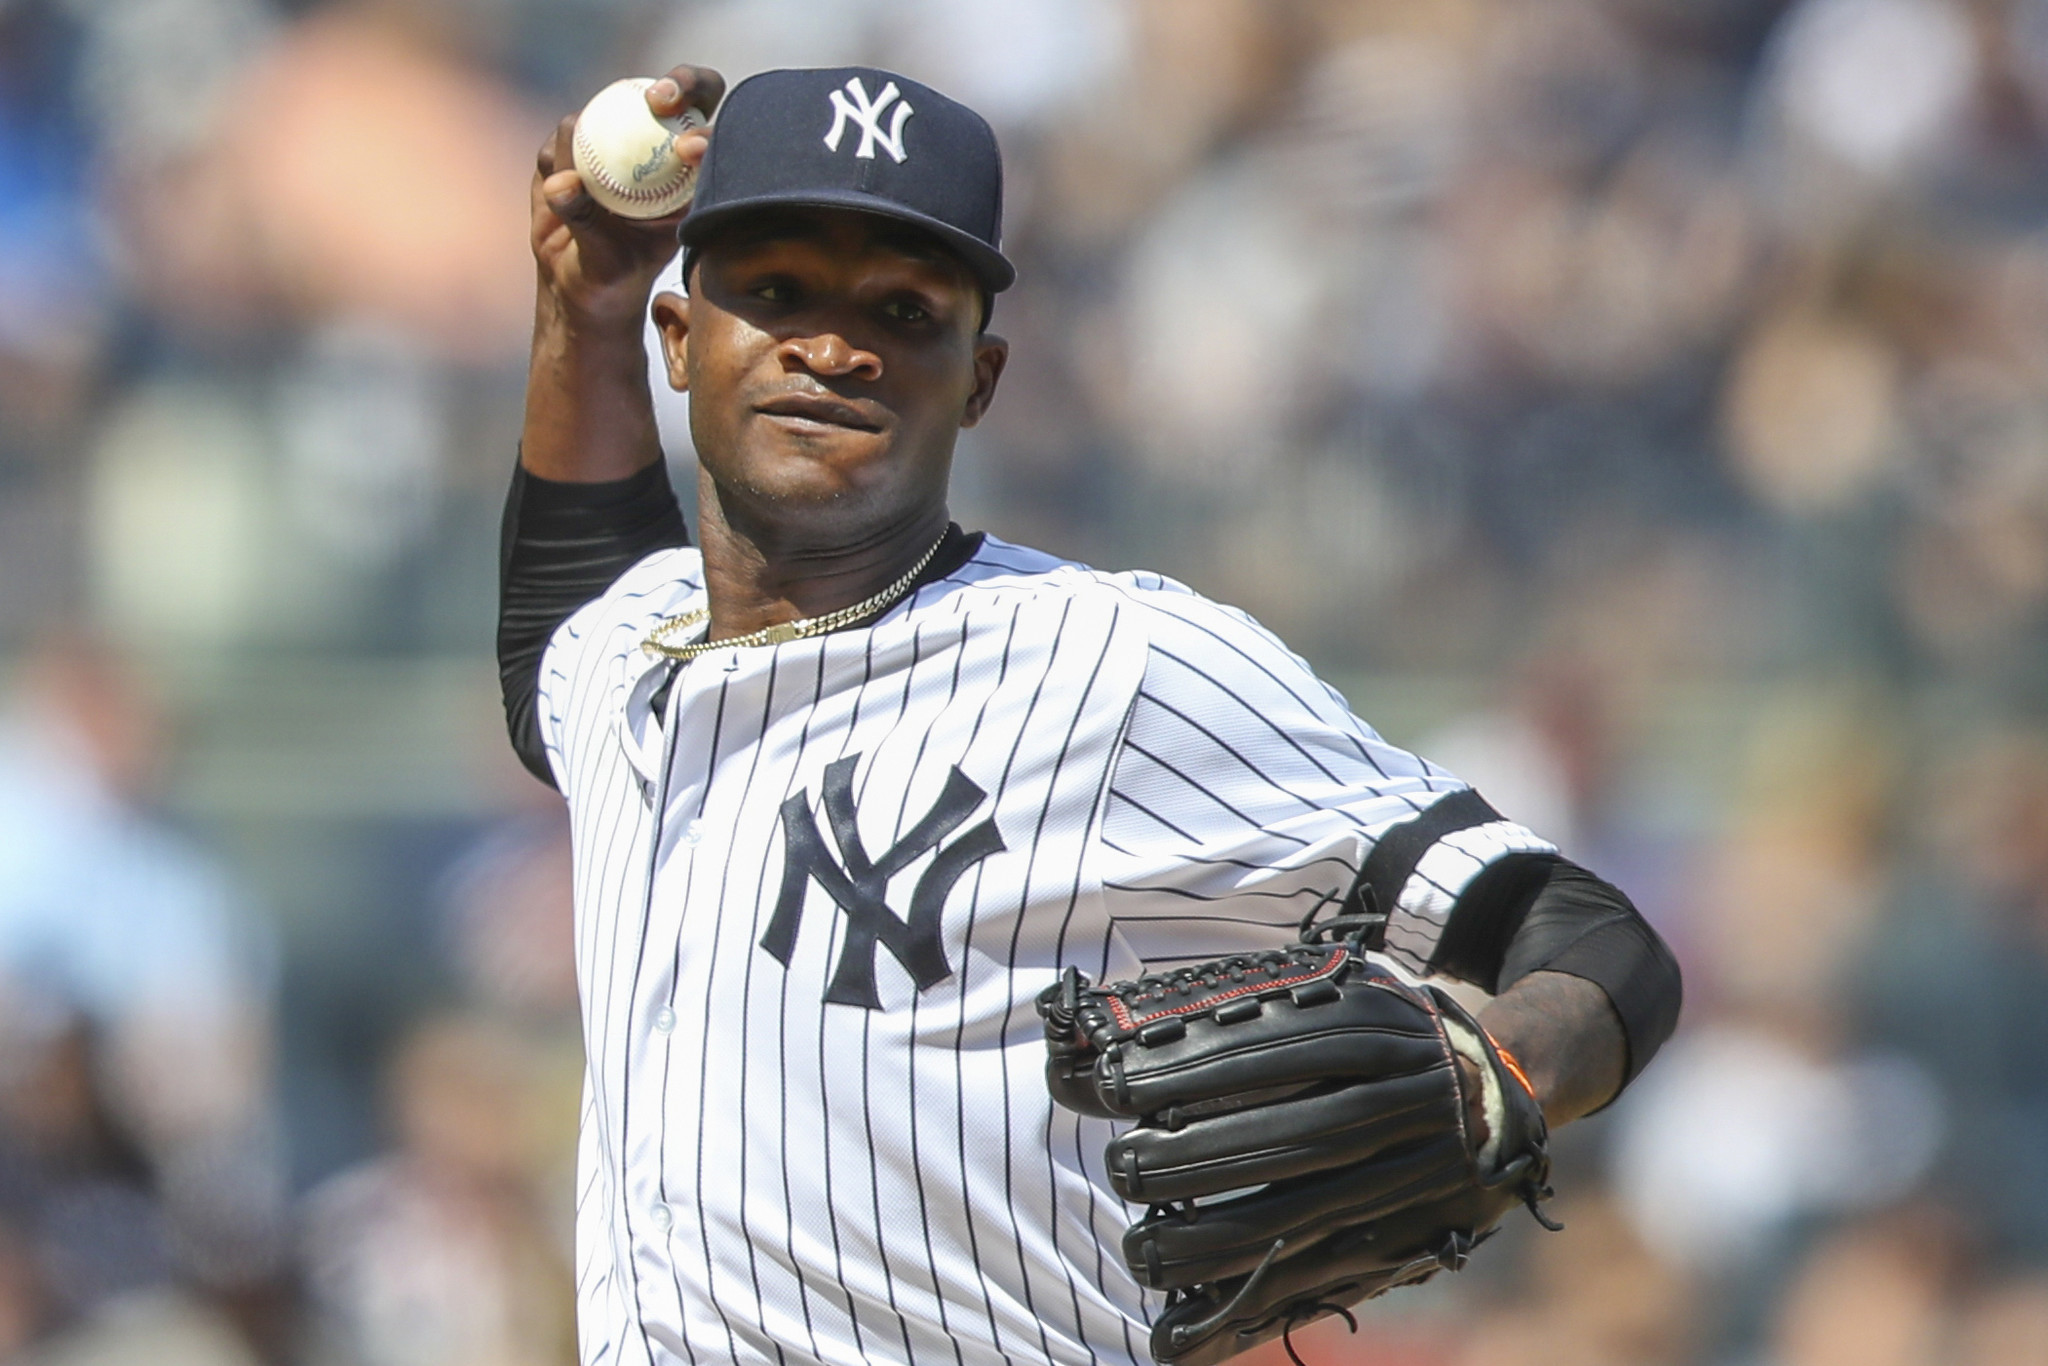 Yankees say Domingo German is OK after reports surface about a car accident in the Dominican Republic